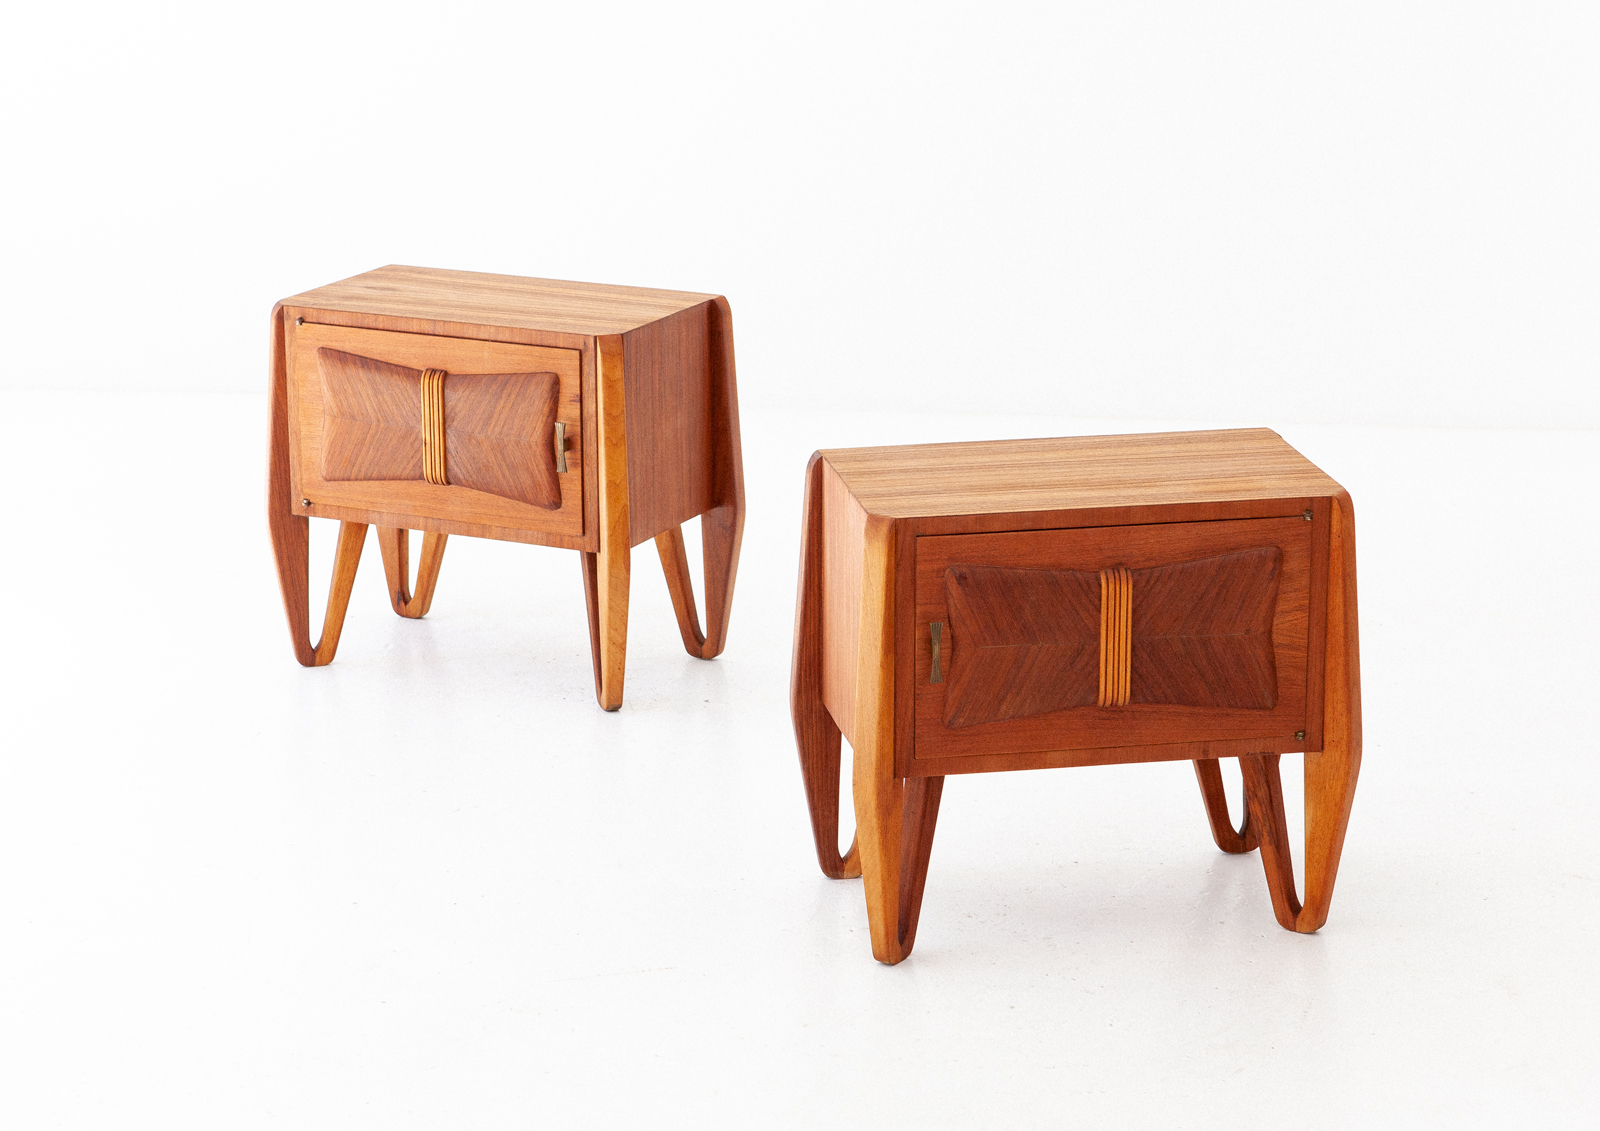 1950s-italian-teak-nightstands-2-bt79